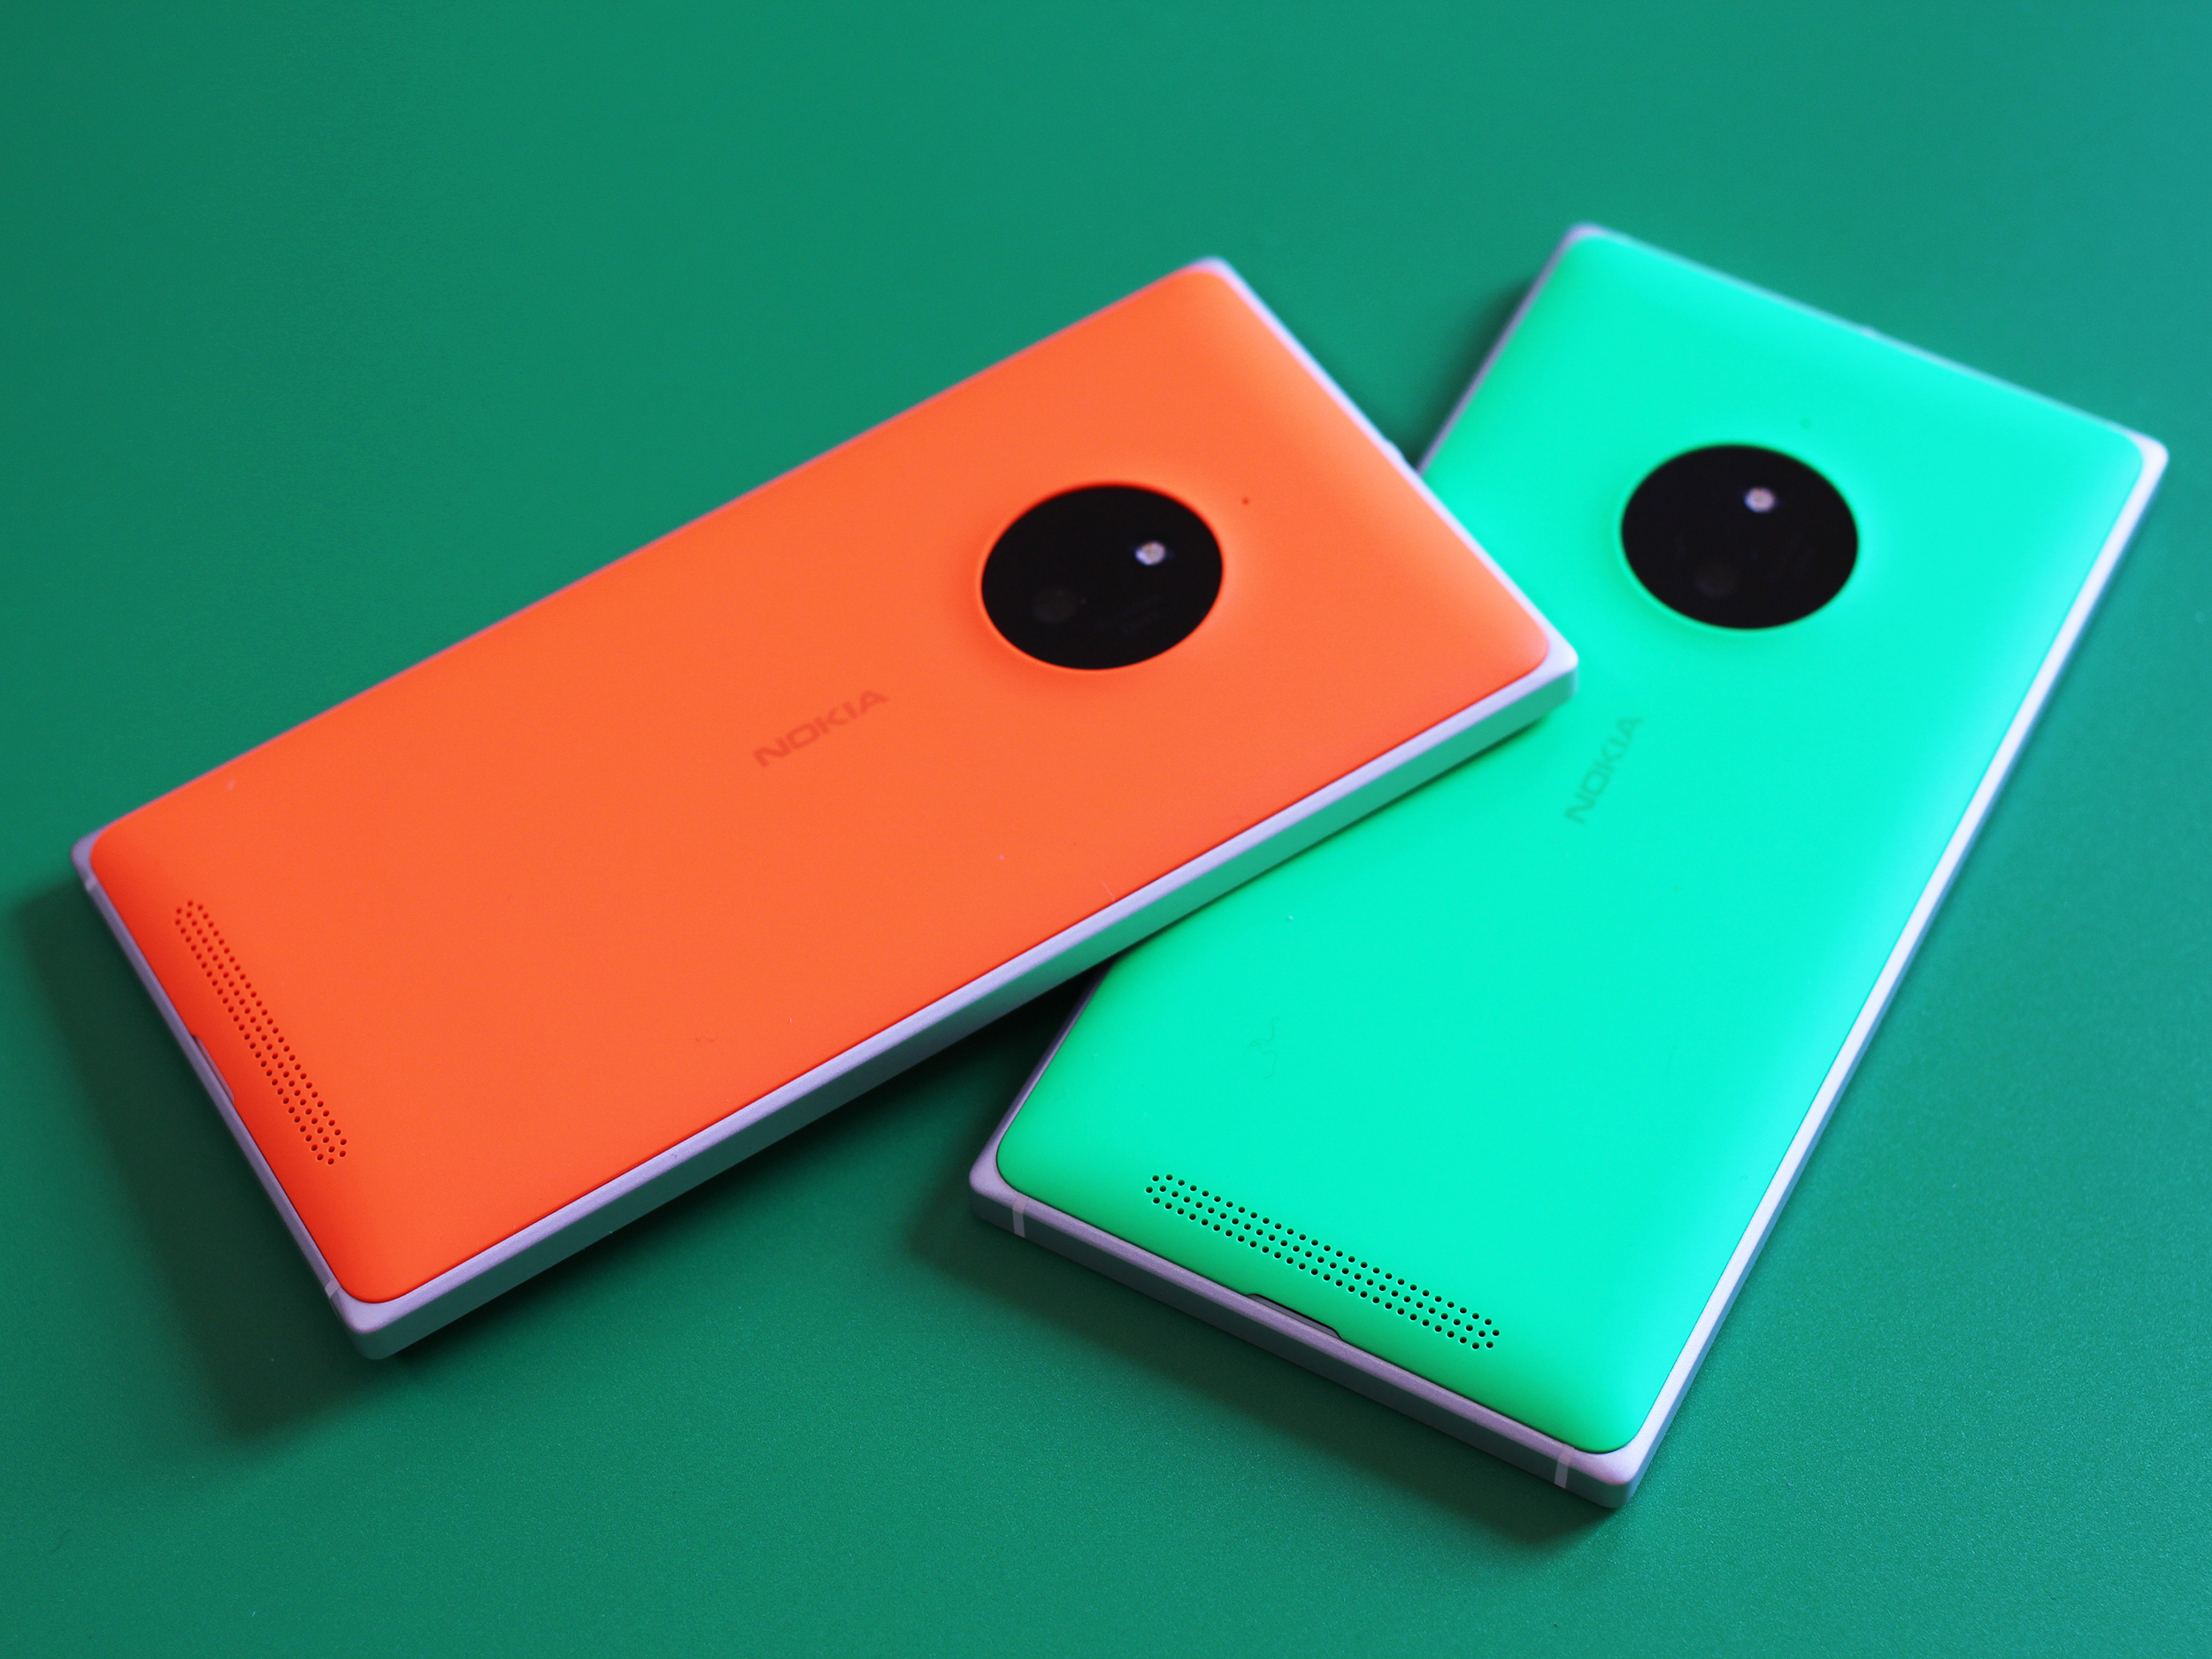 You can now pre-order Lumia 730, 735 and 830 in Russia